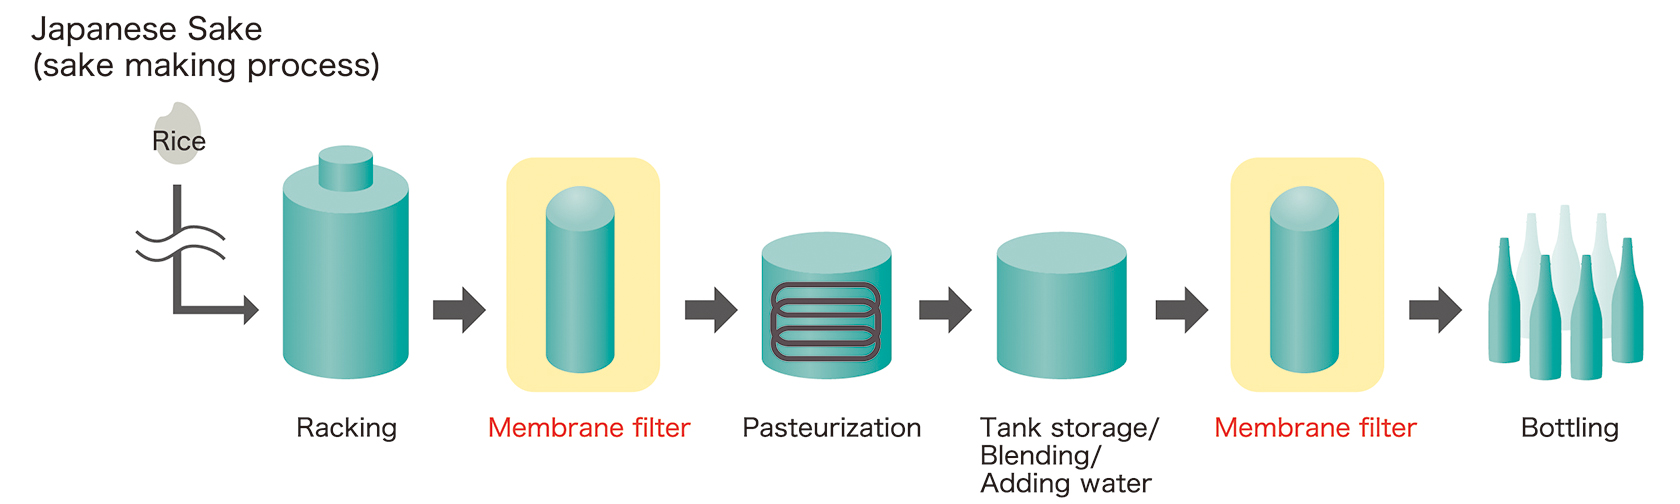 [image] Steps of Japanese Sake making process, using membrane filters